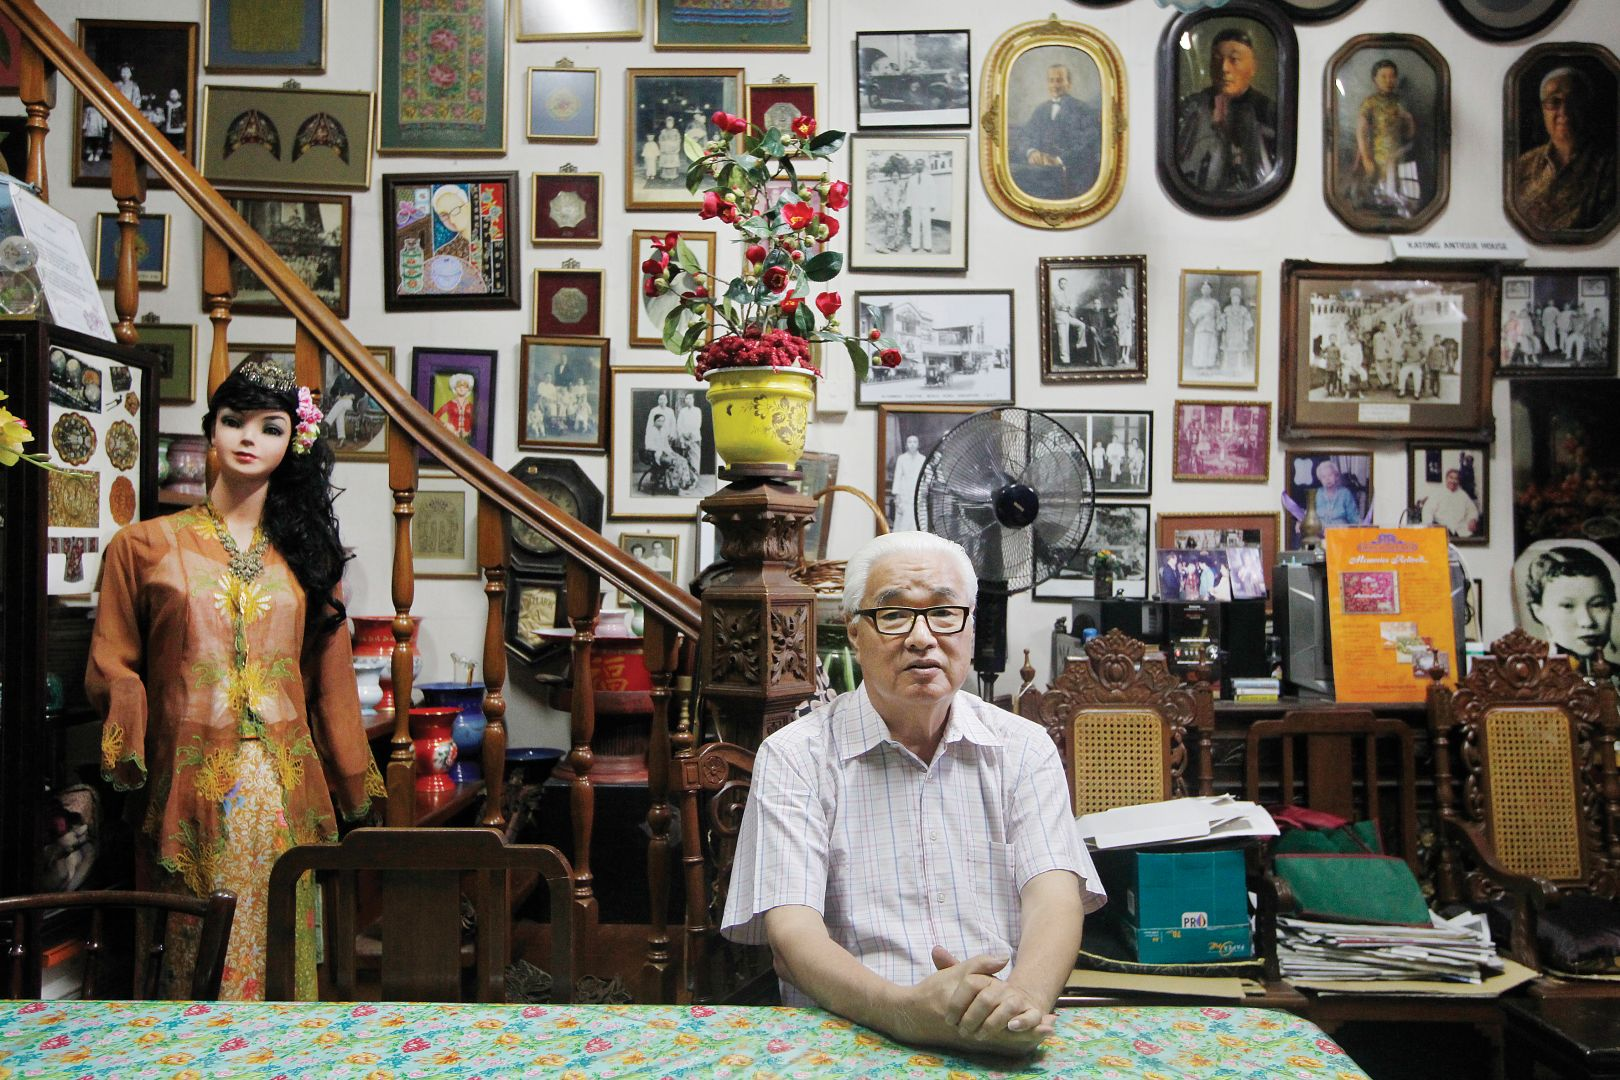 Shops, museums in Katong seek to preserve Peranakan culture